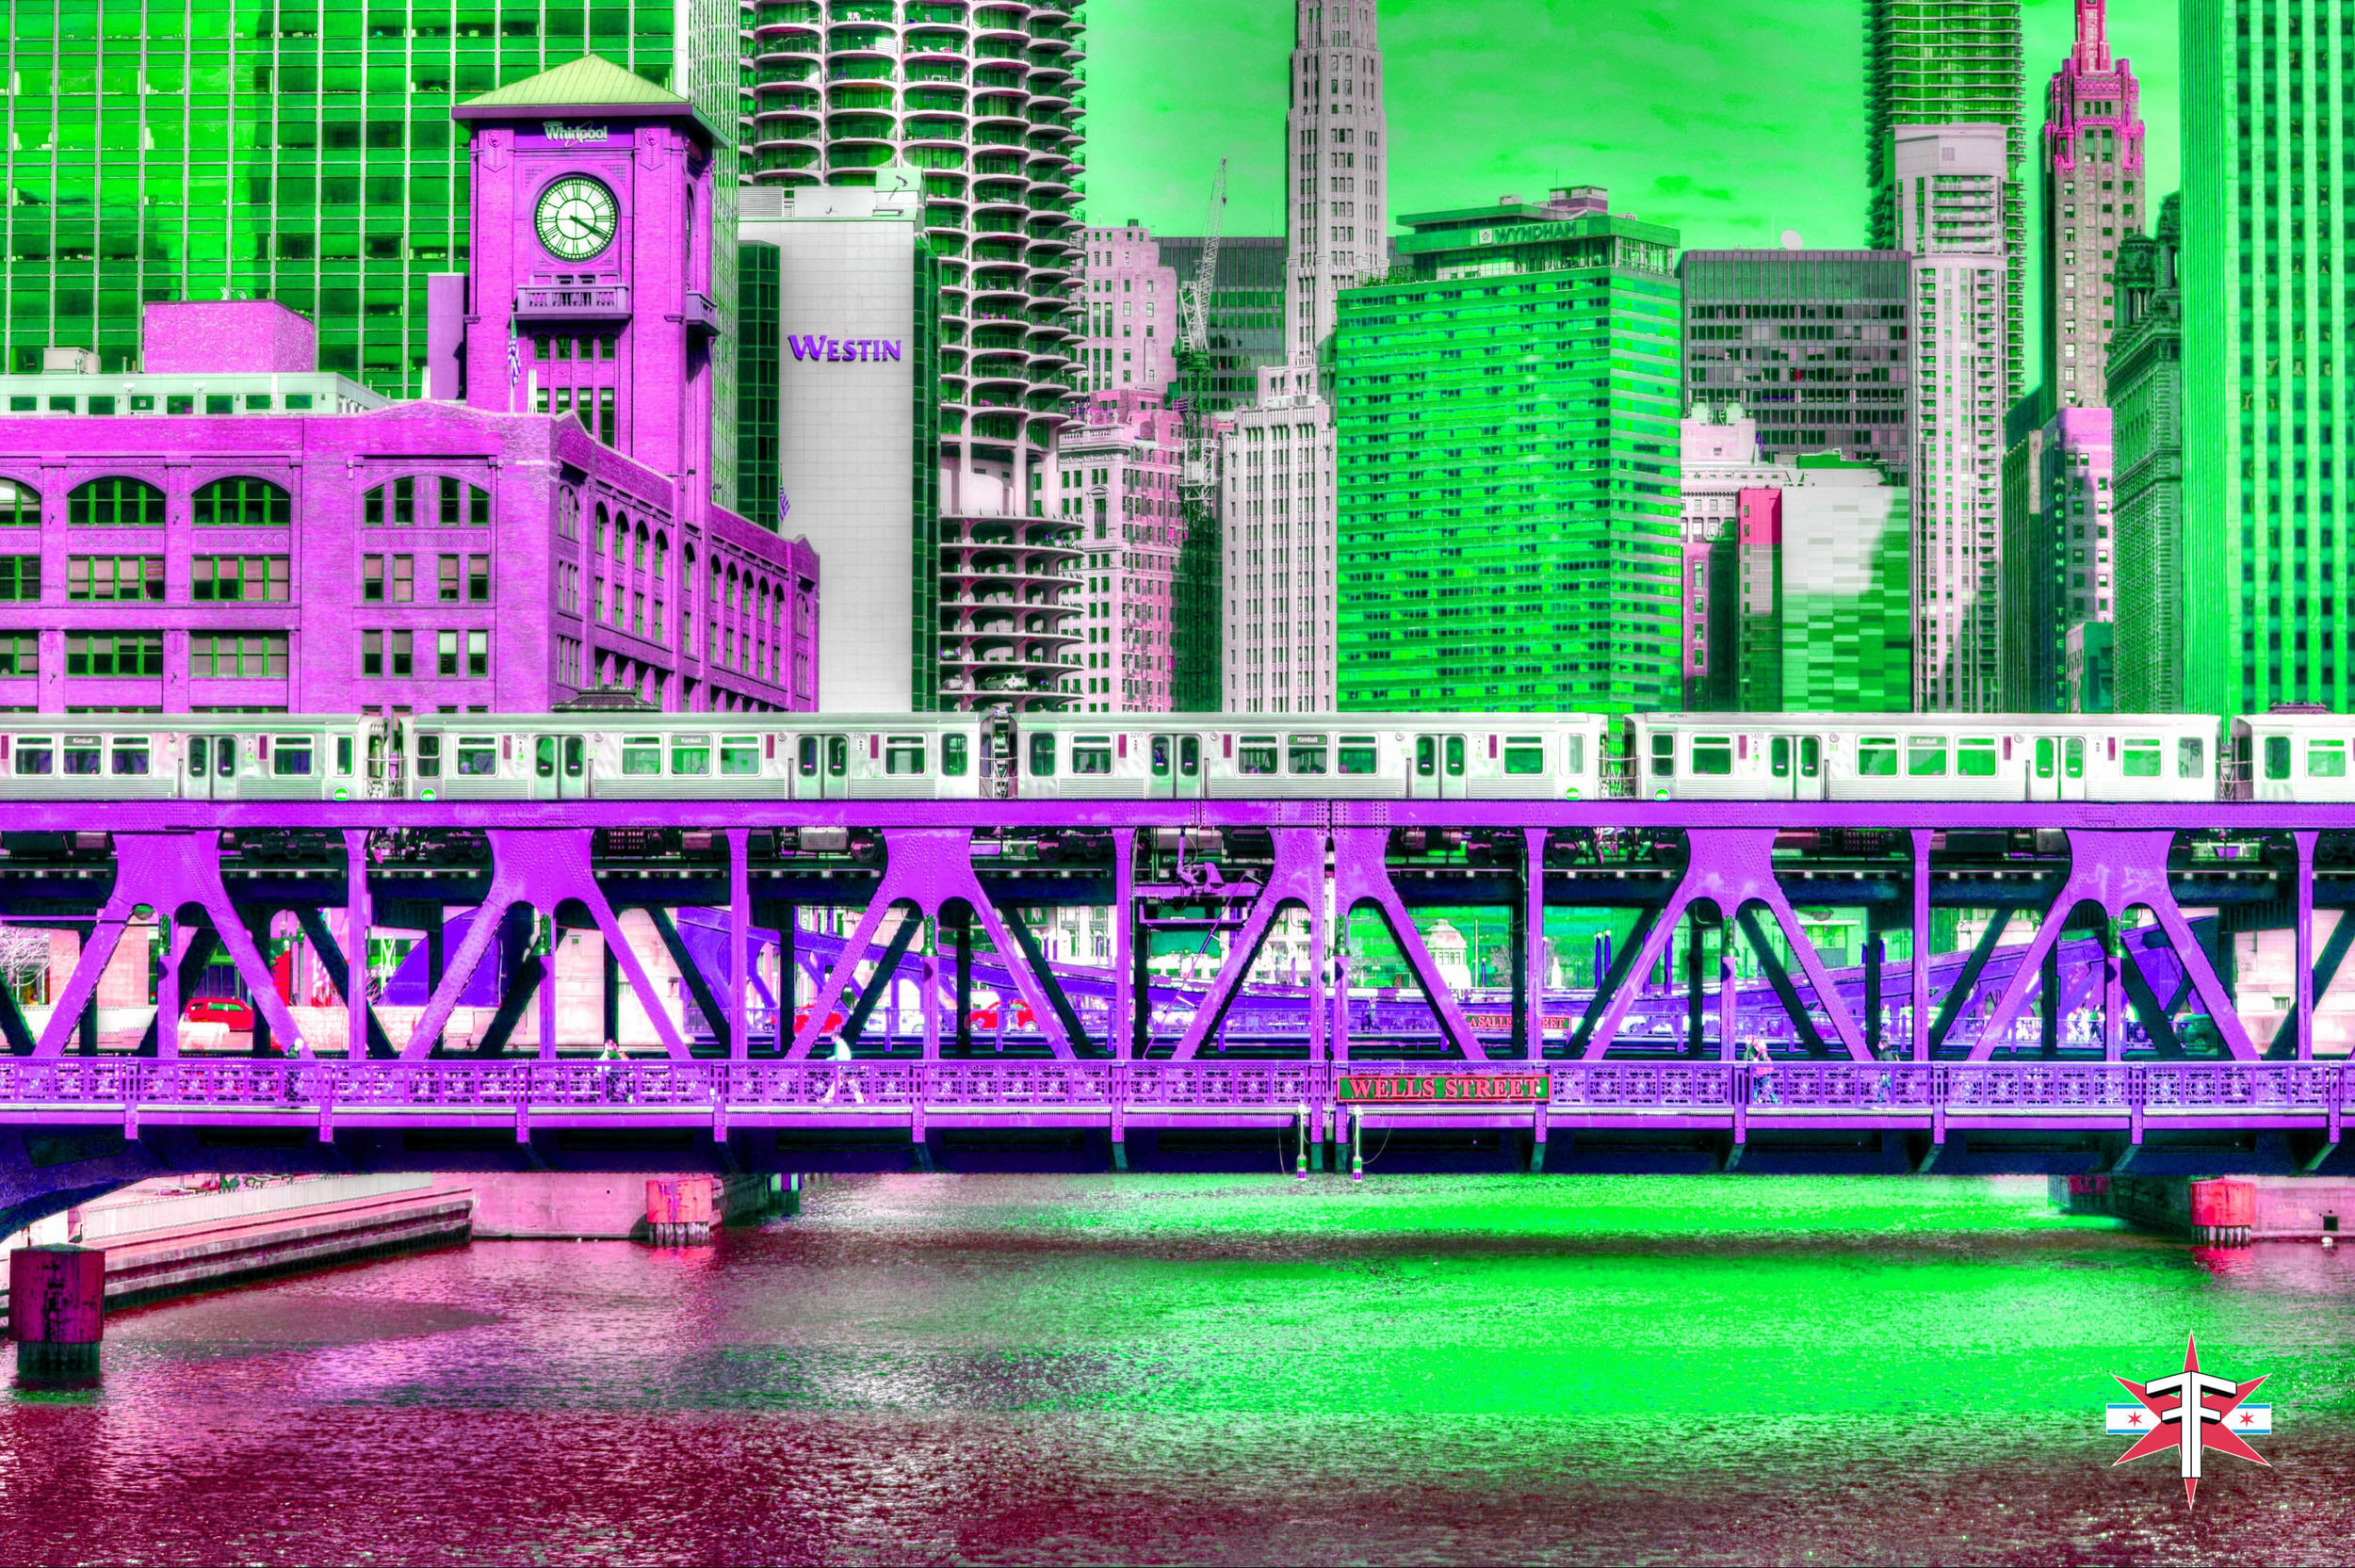 chicago art abstract eric formato photography color travel cityscape architecture saturated citycapes bright vibrant artistic-12.jpg